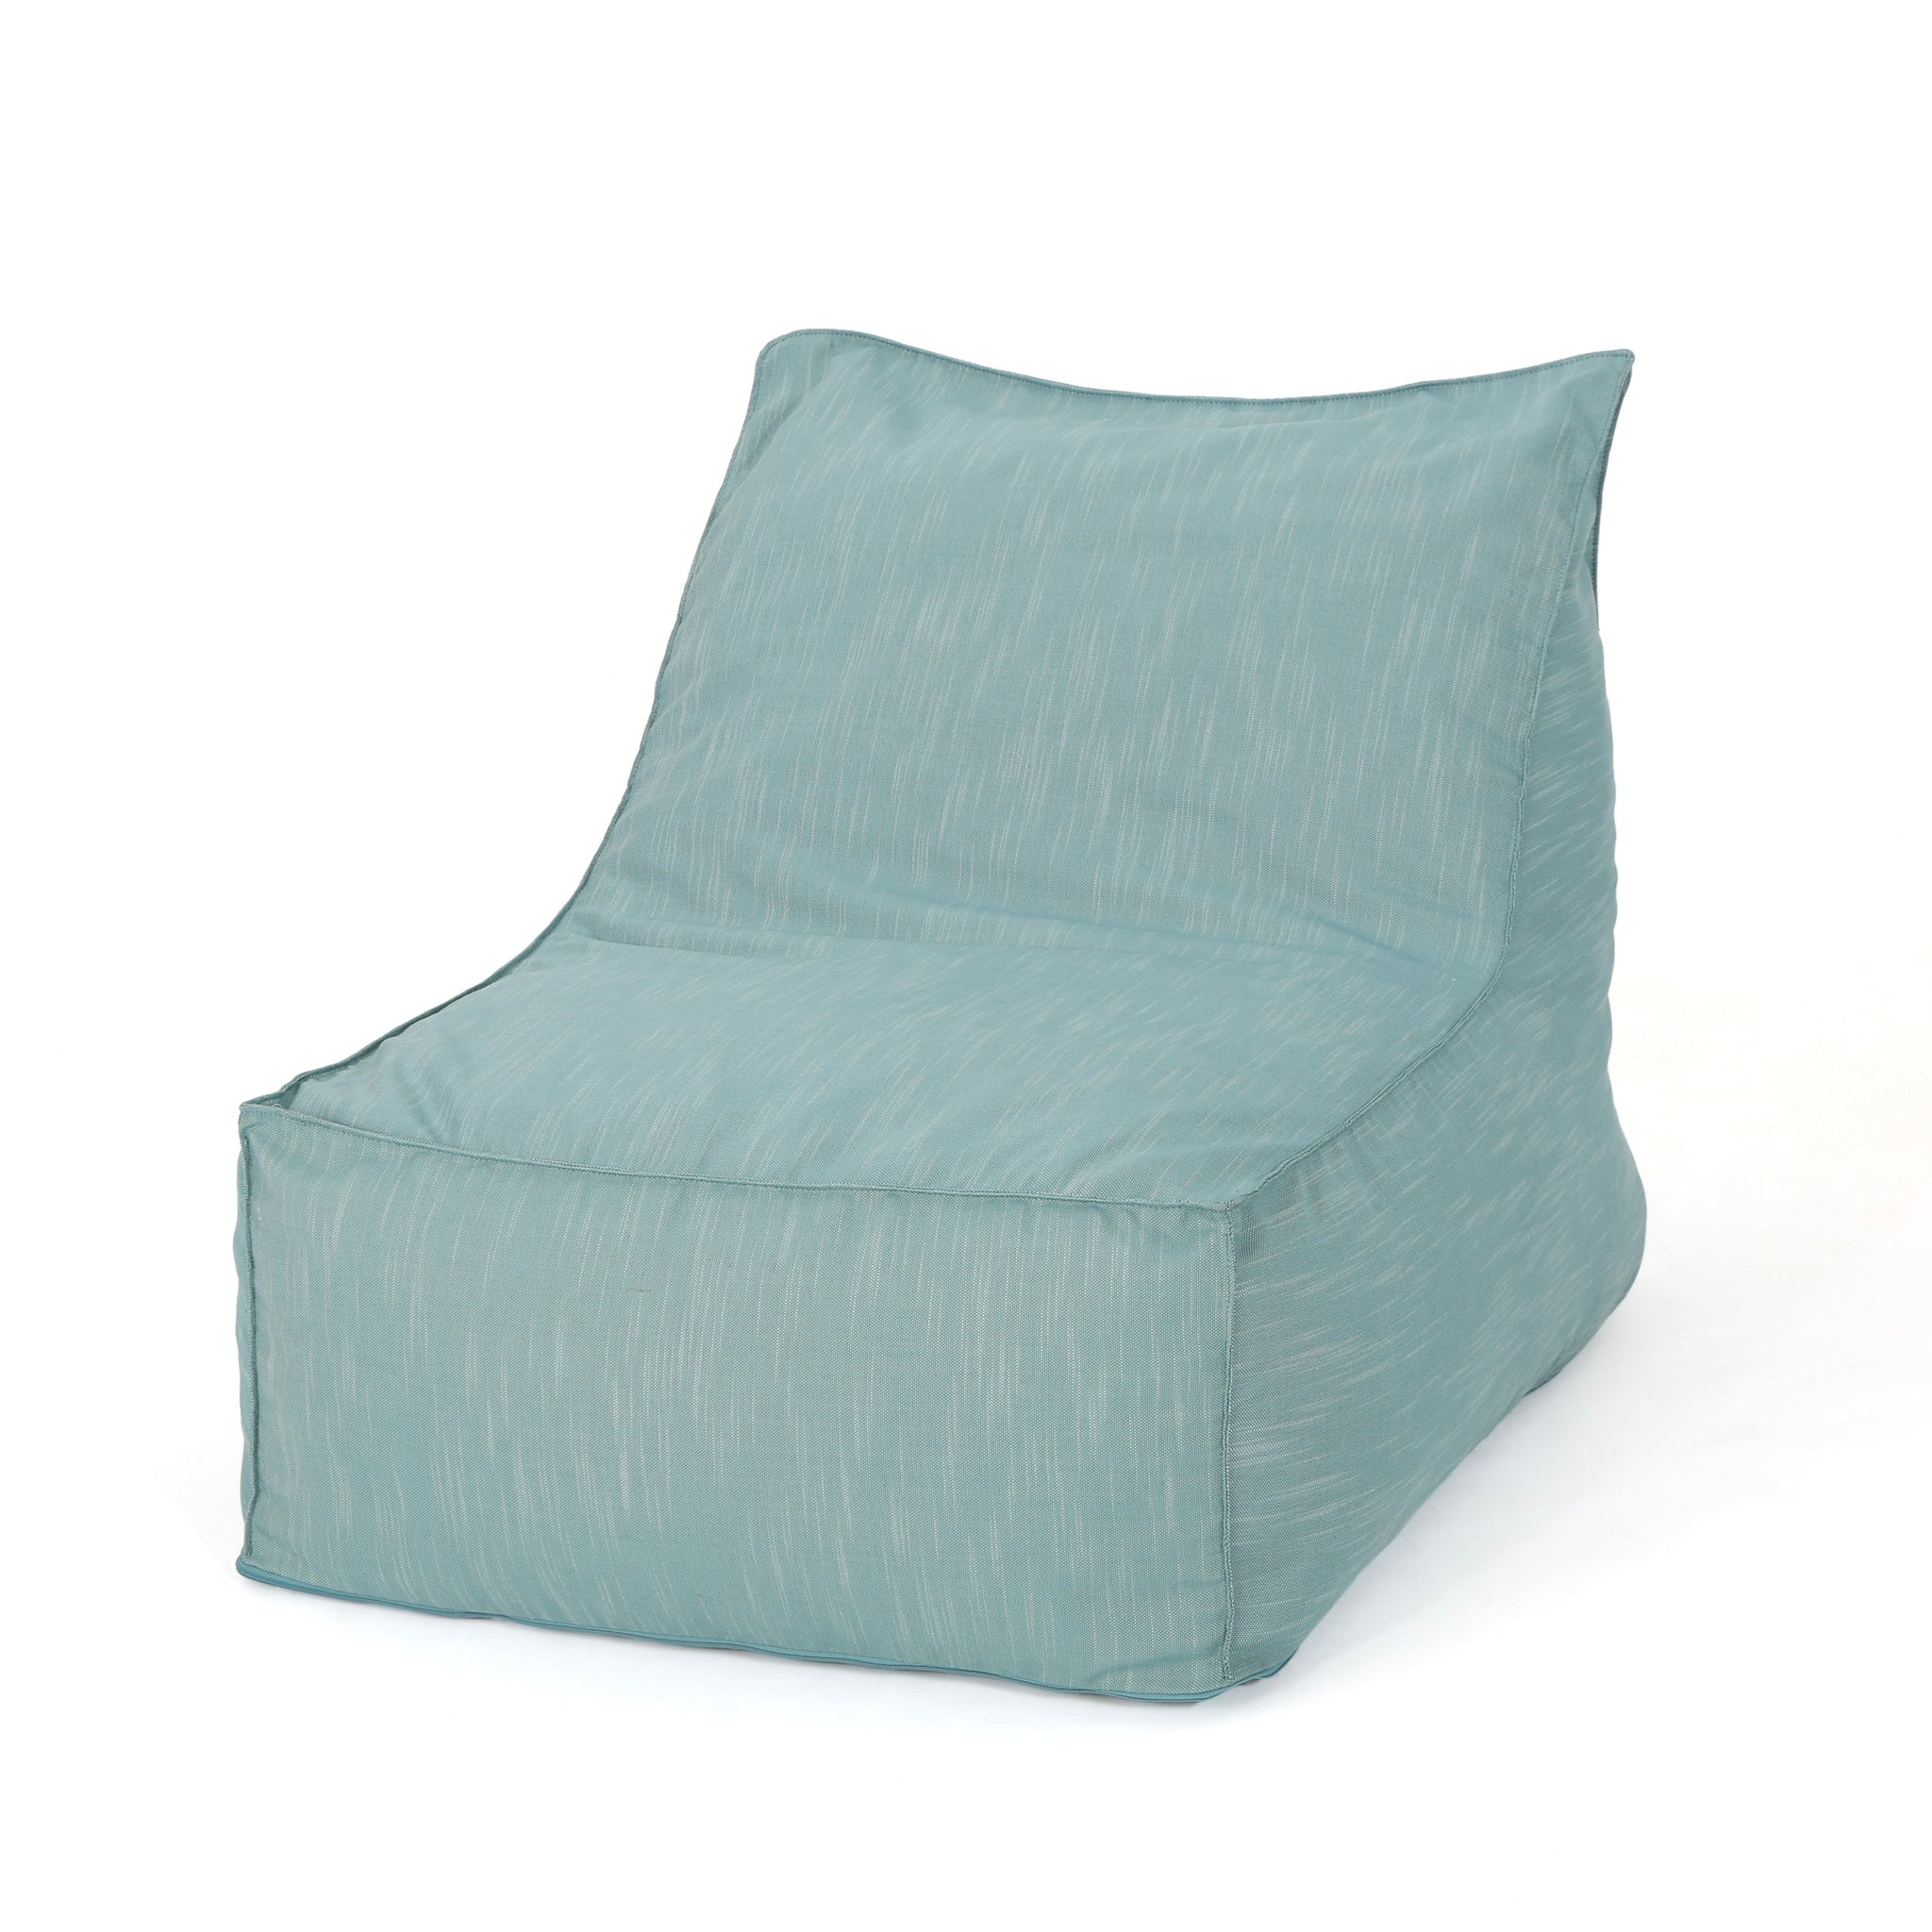 3 Ft Water Resistant Fabric Indoor Bean Bag Chair | Color: Blue, Color: Teal